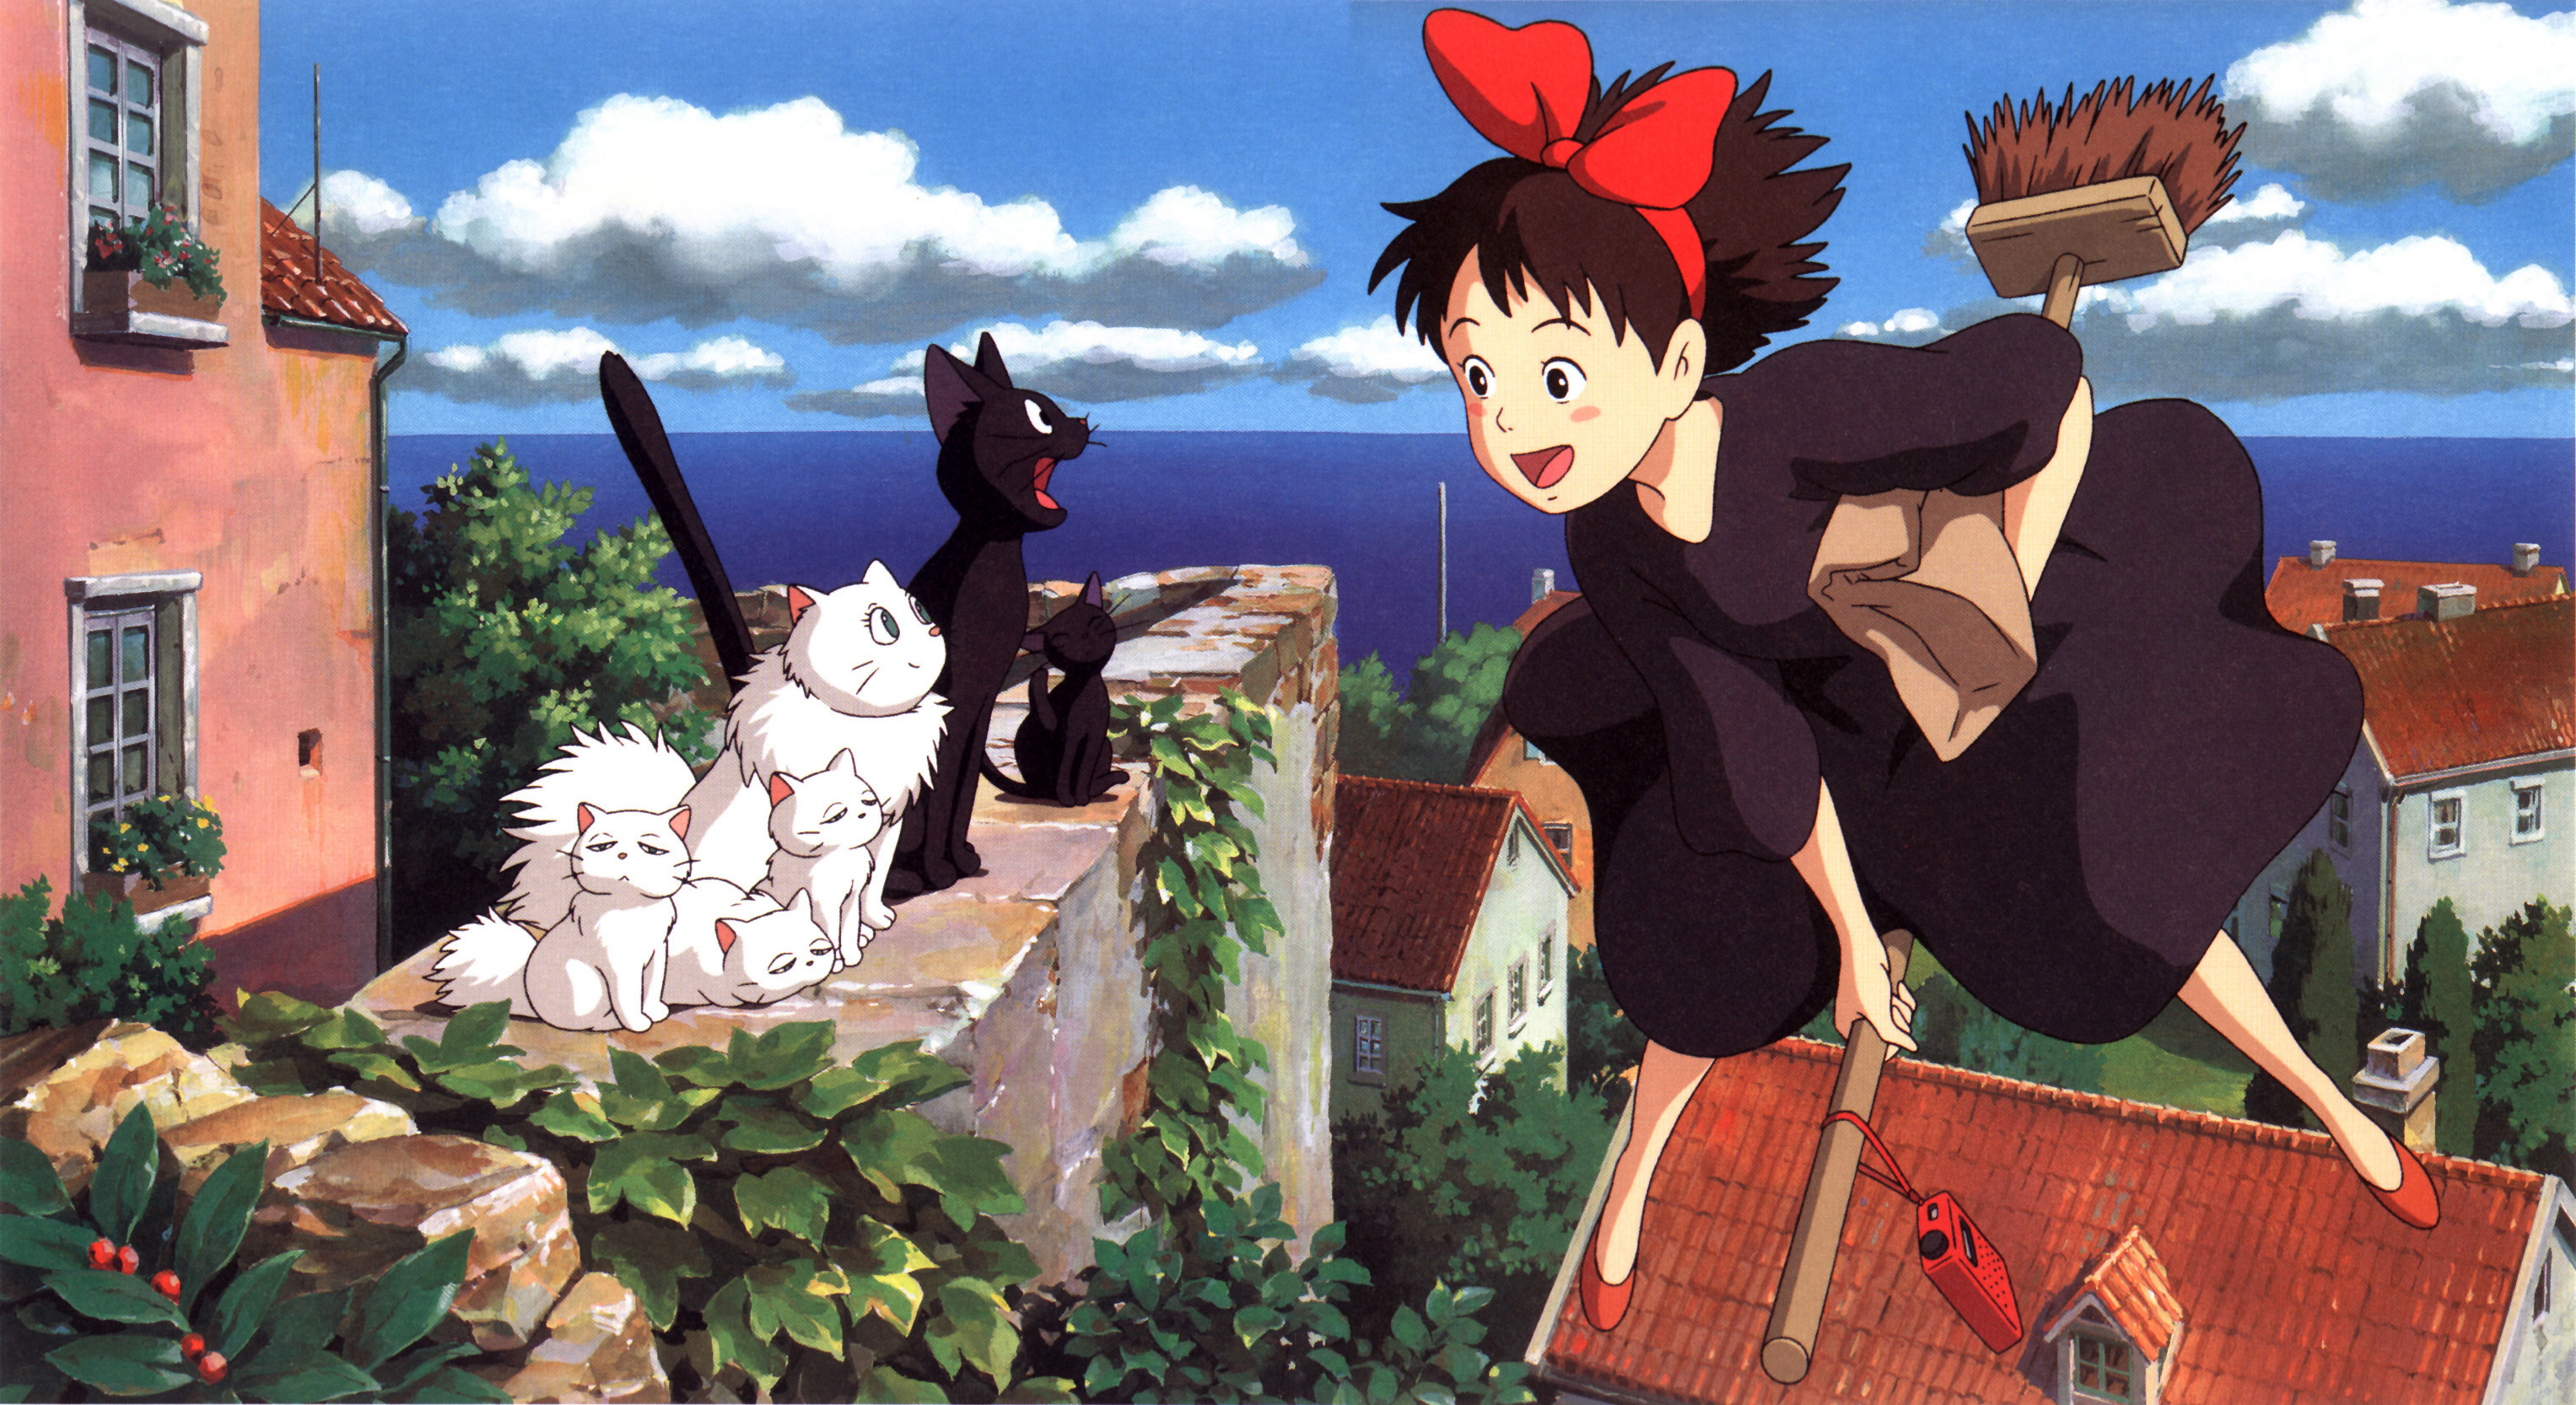 Kiki delivery service Anime HD Wallpaper